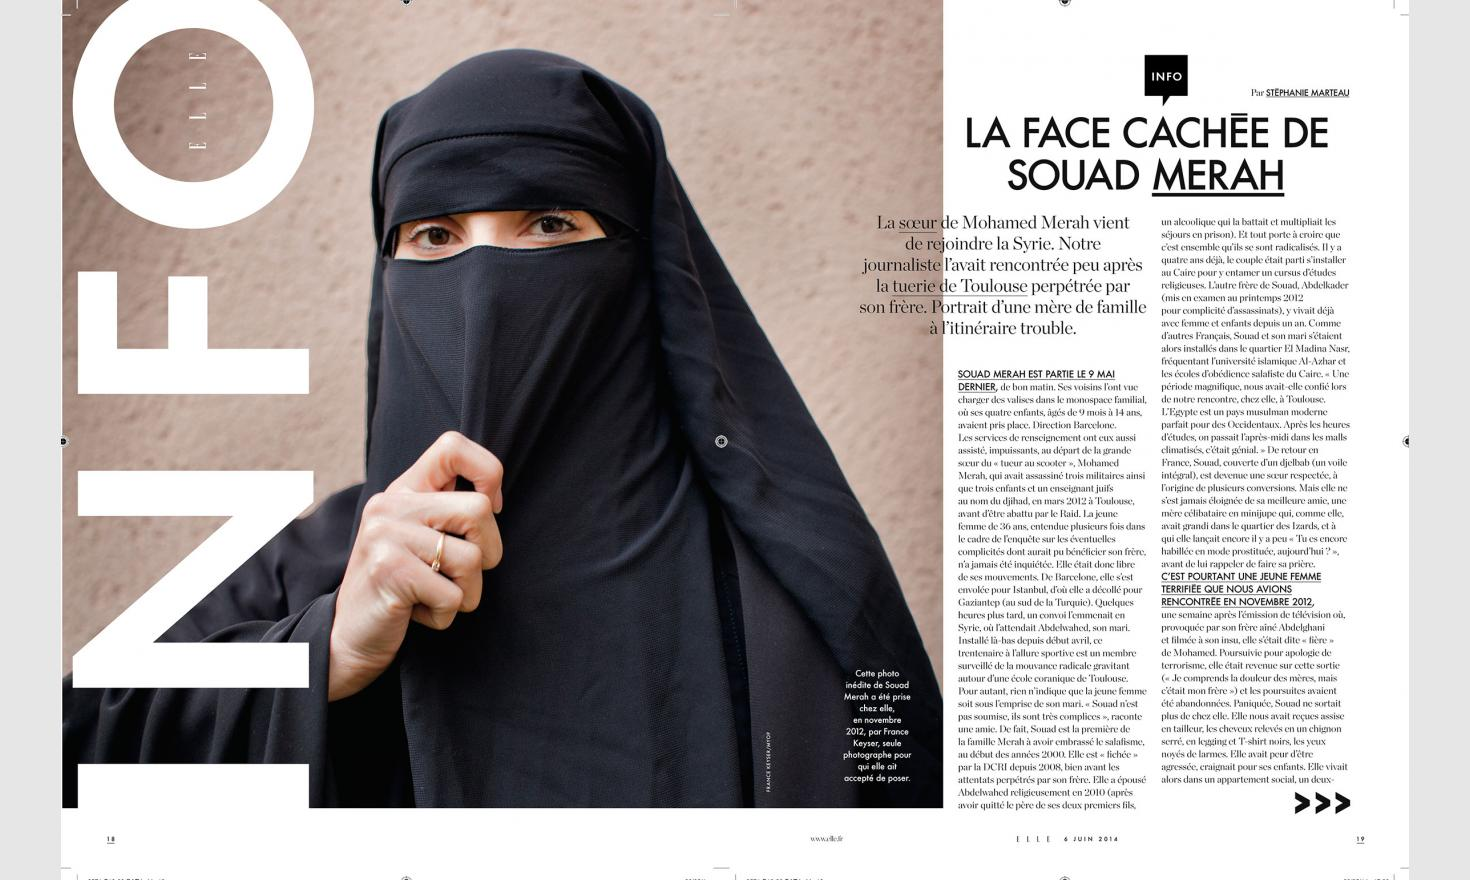 Toulouse, October 29, 2012. Souad Merah, sister of Mohamed Merah, french terrorist, perpetrator of Toulouse and Montauban shootings.